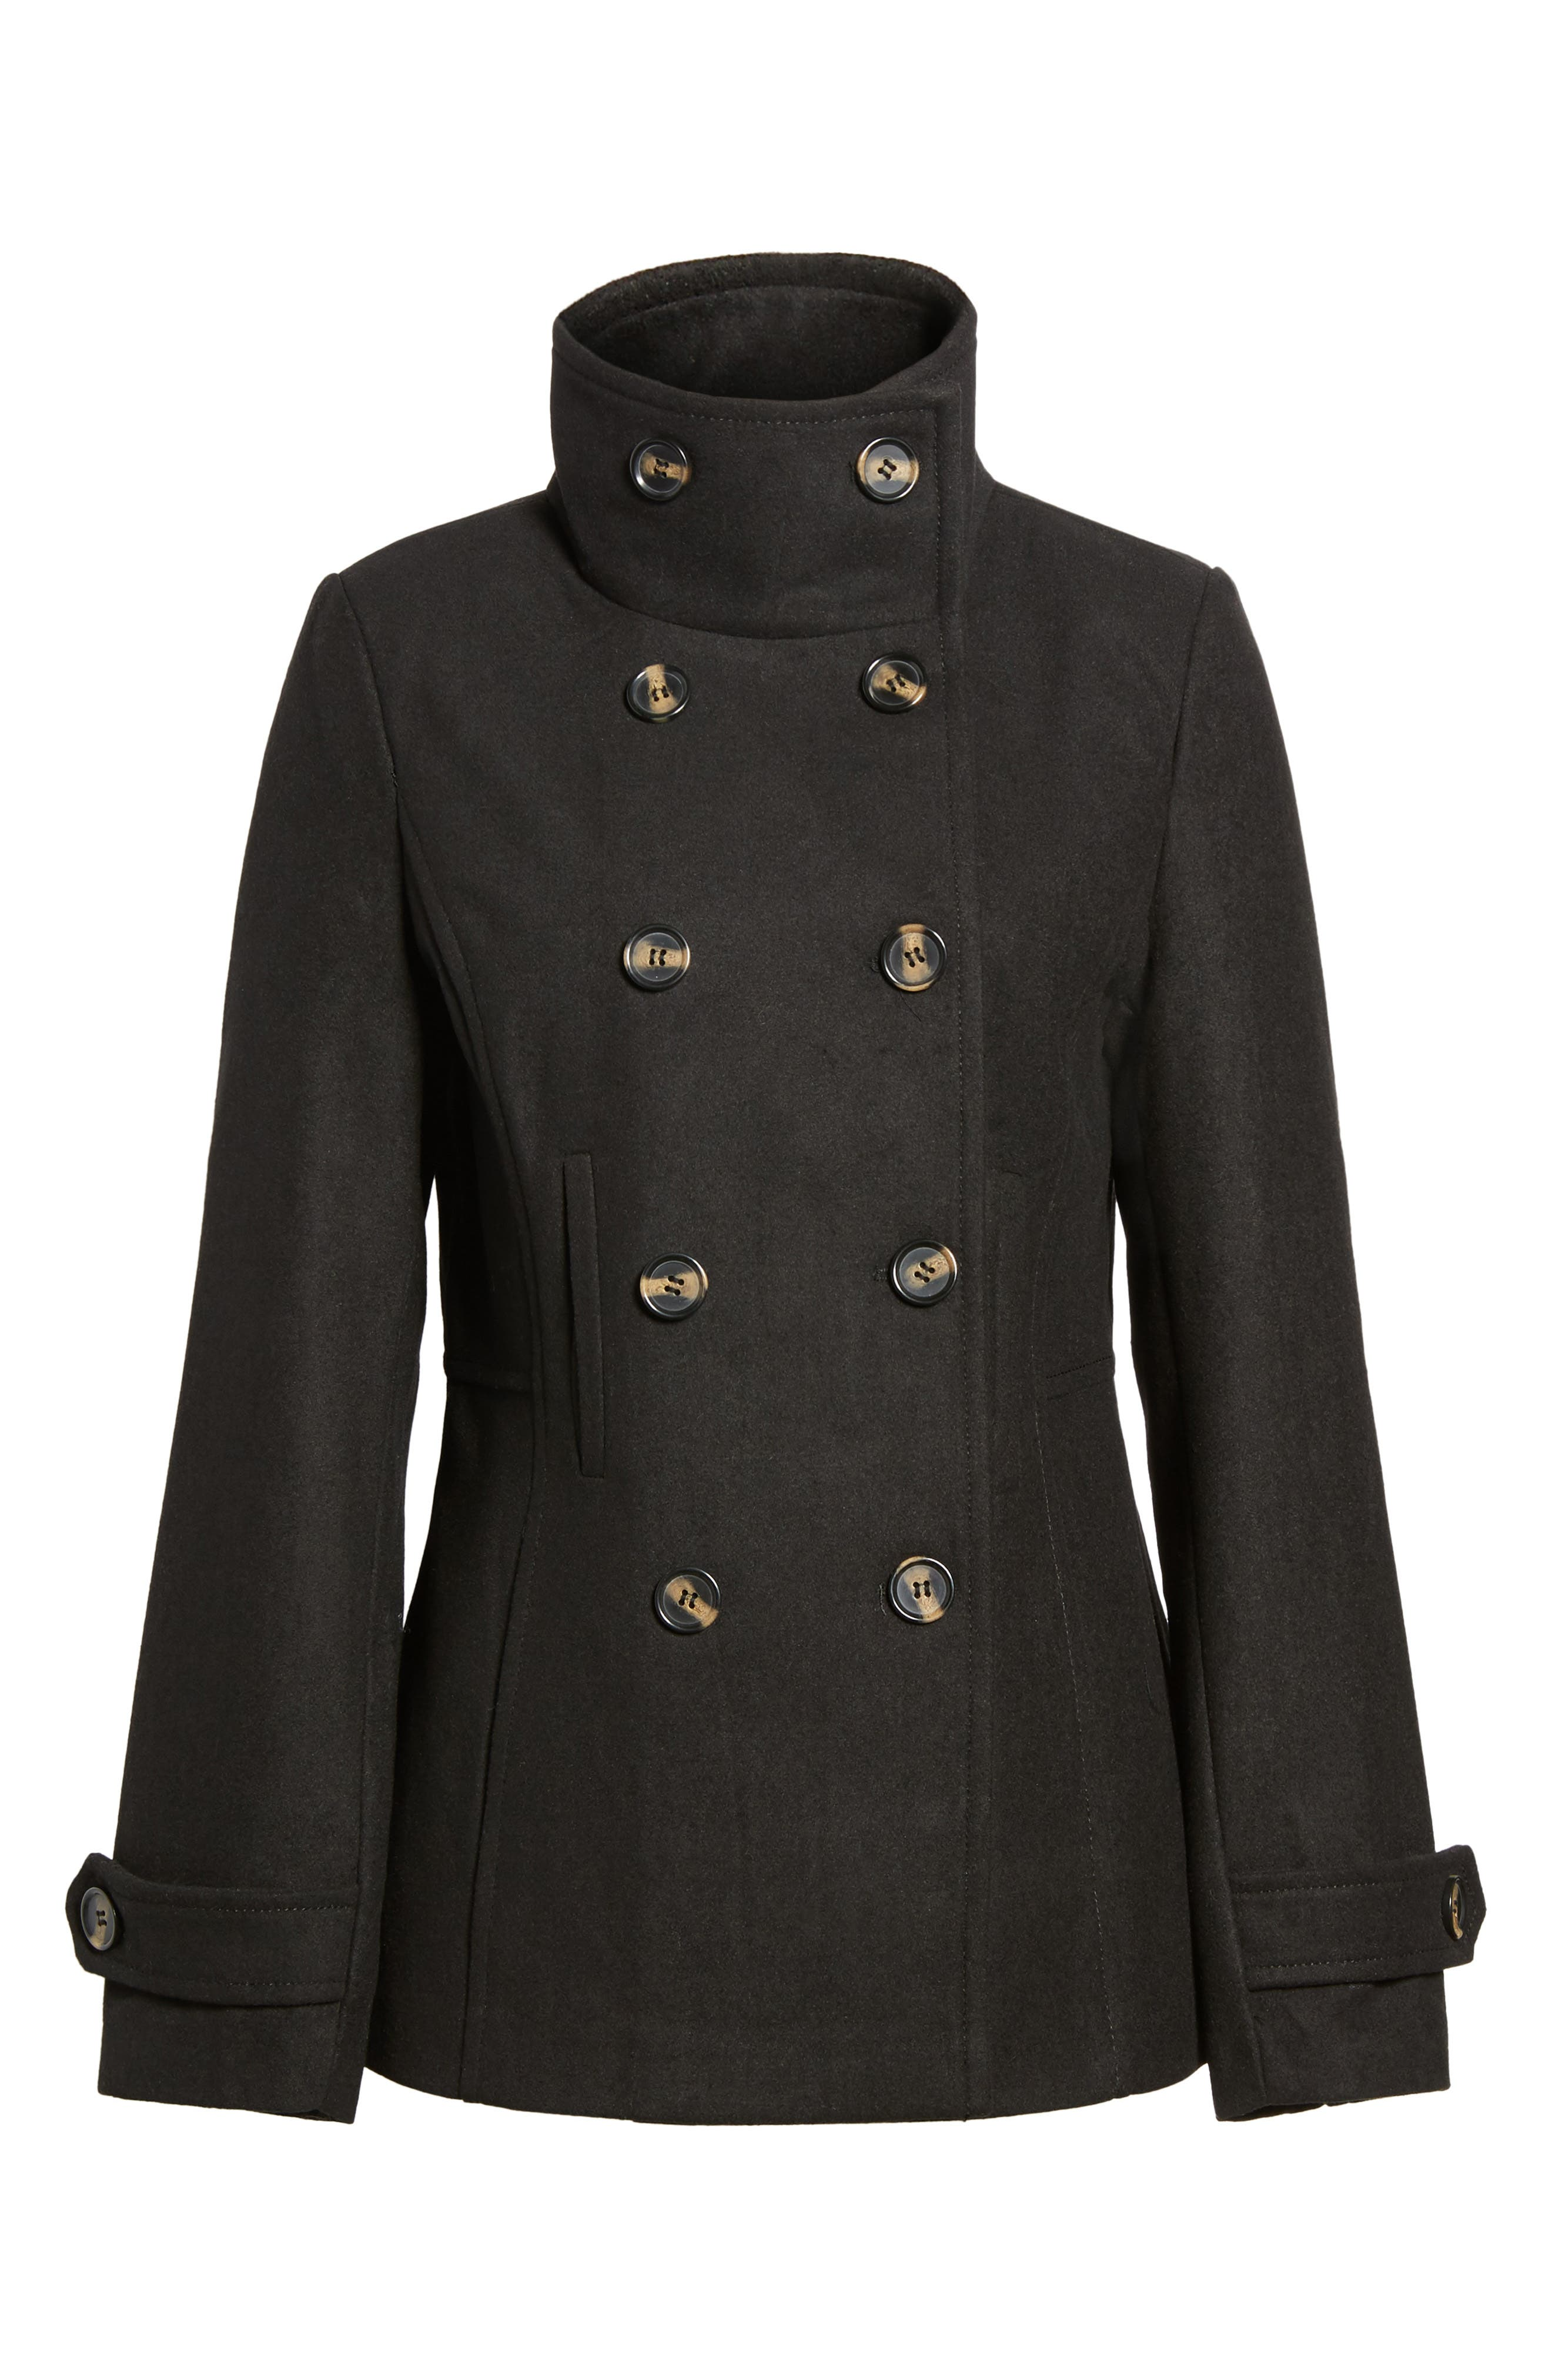 THREAD & SUPPLY,                             Double Breasted Peacoat,                             Alternate thumbnail 2, color,                             BLACK